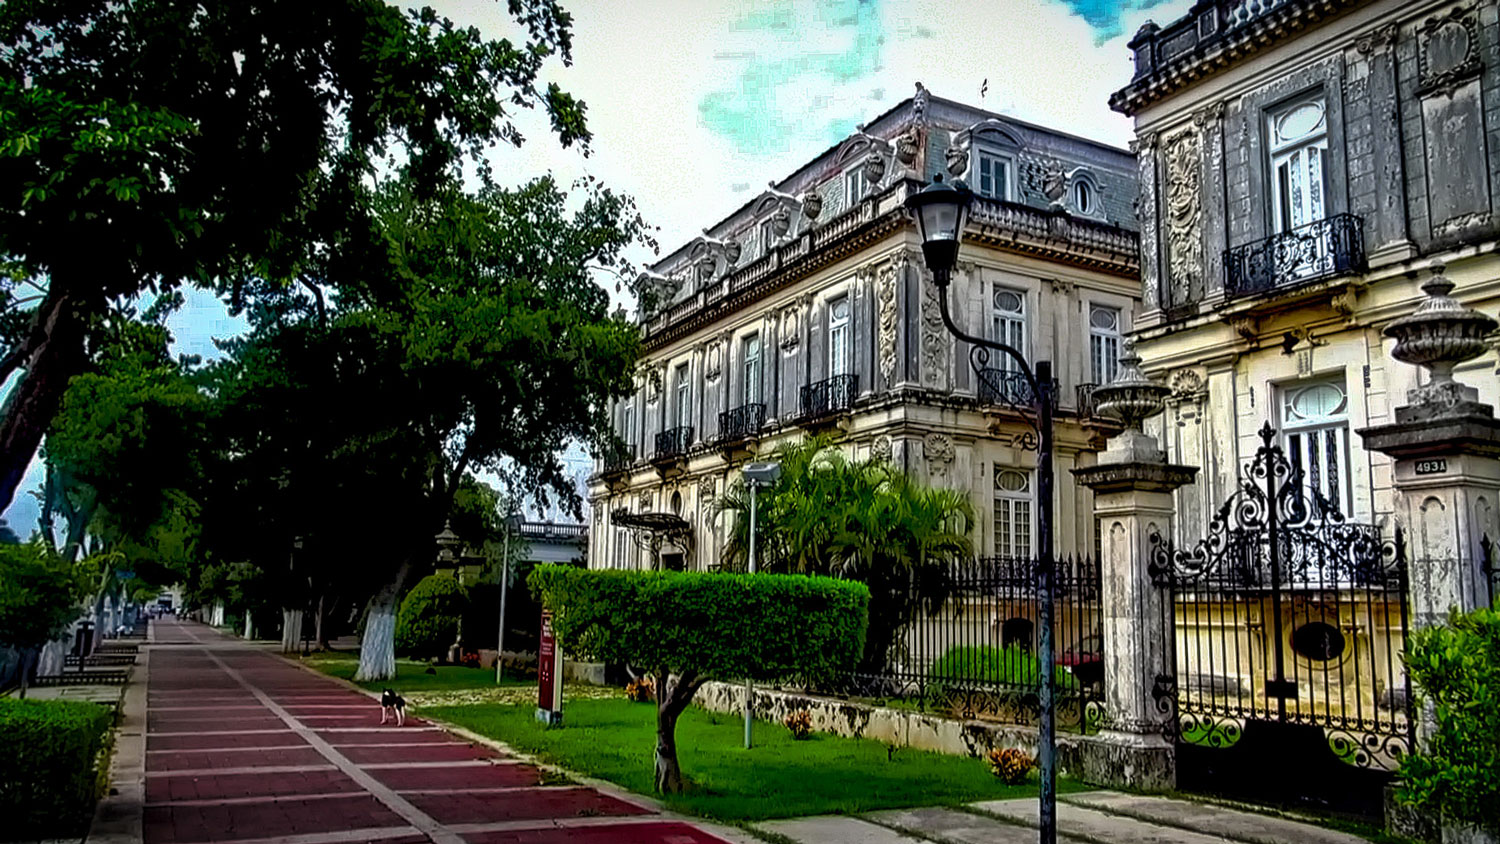 The 'Twin Houses' just down the road, on Paseo de Montejo.